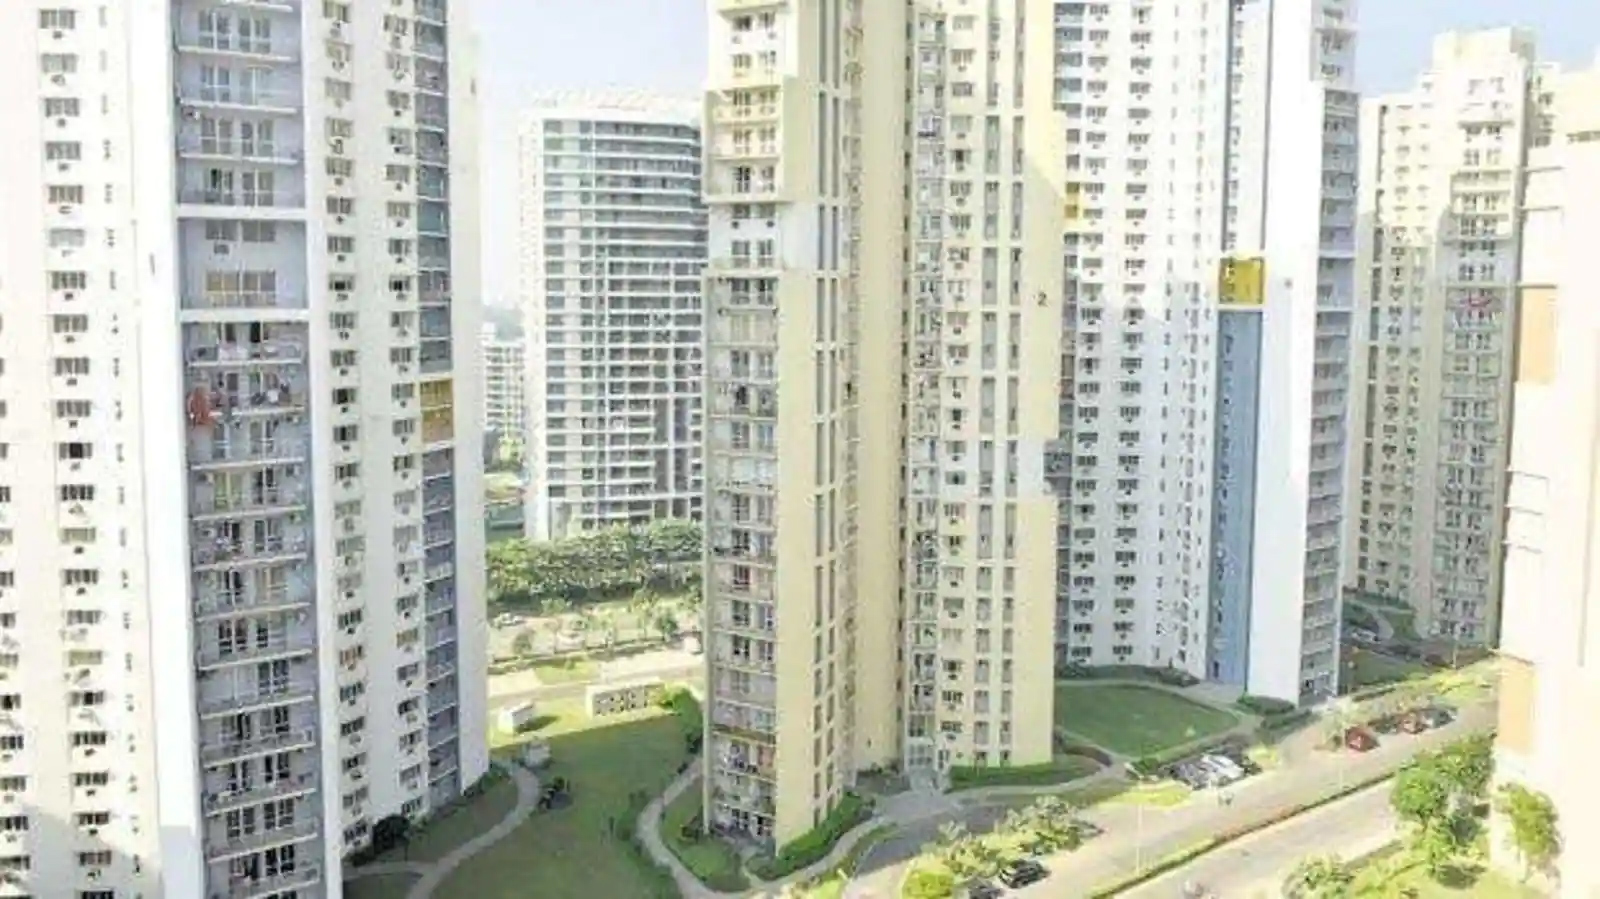 Godrej Properties sells ₹575 crore flats in Noida in just one day